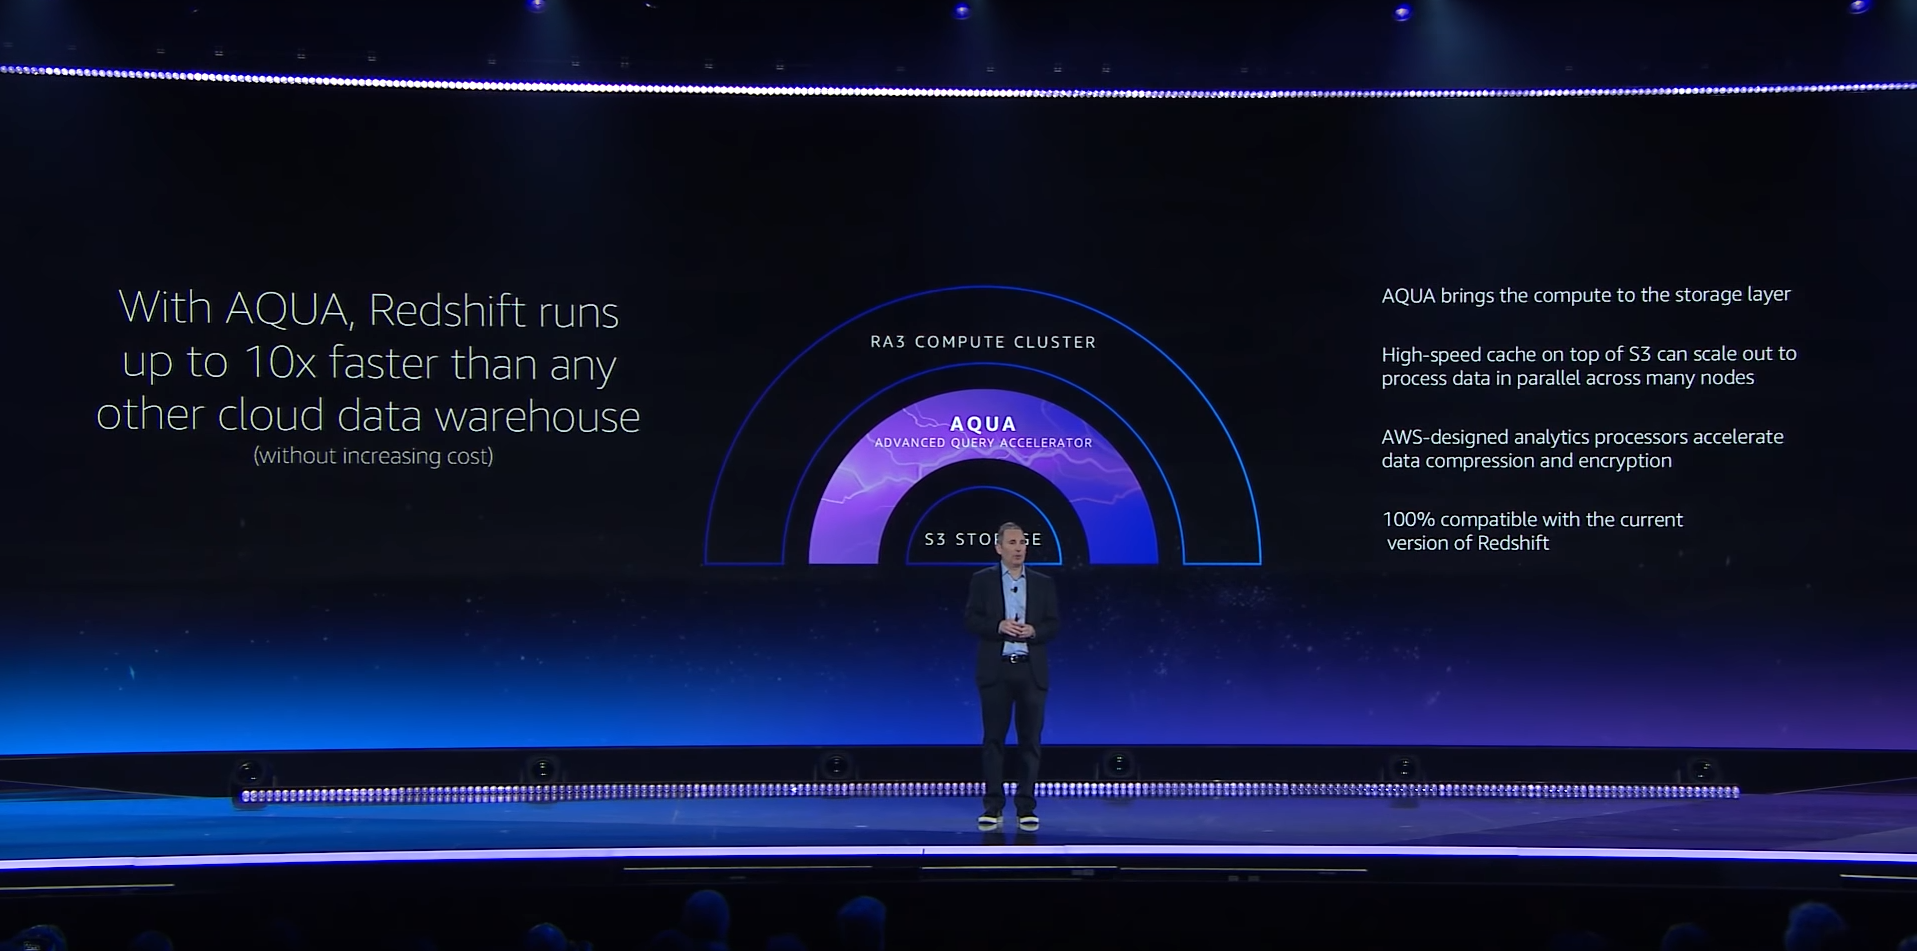 AWS CEO Andy Jassy announcing AQUA at AWS re:Invent 2019